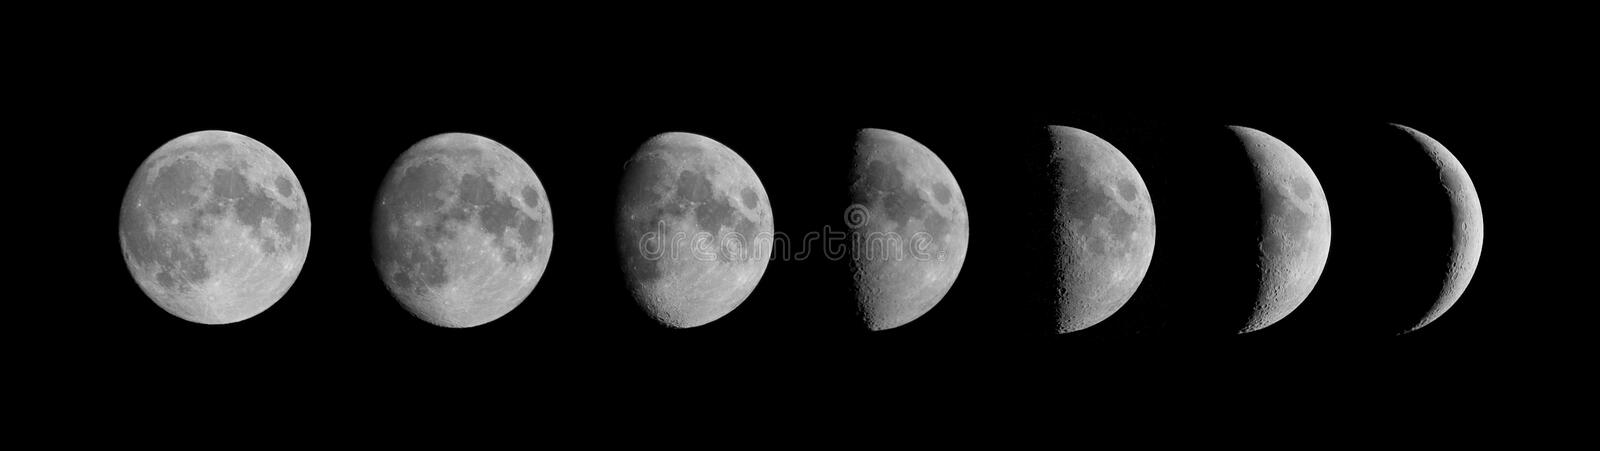 Moon phases royalty free stock image